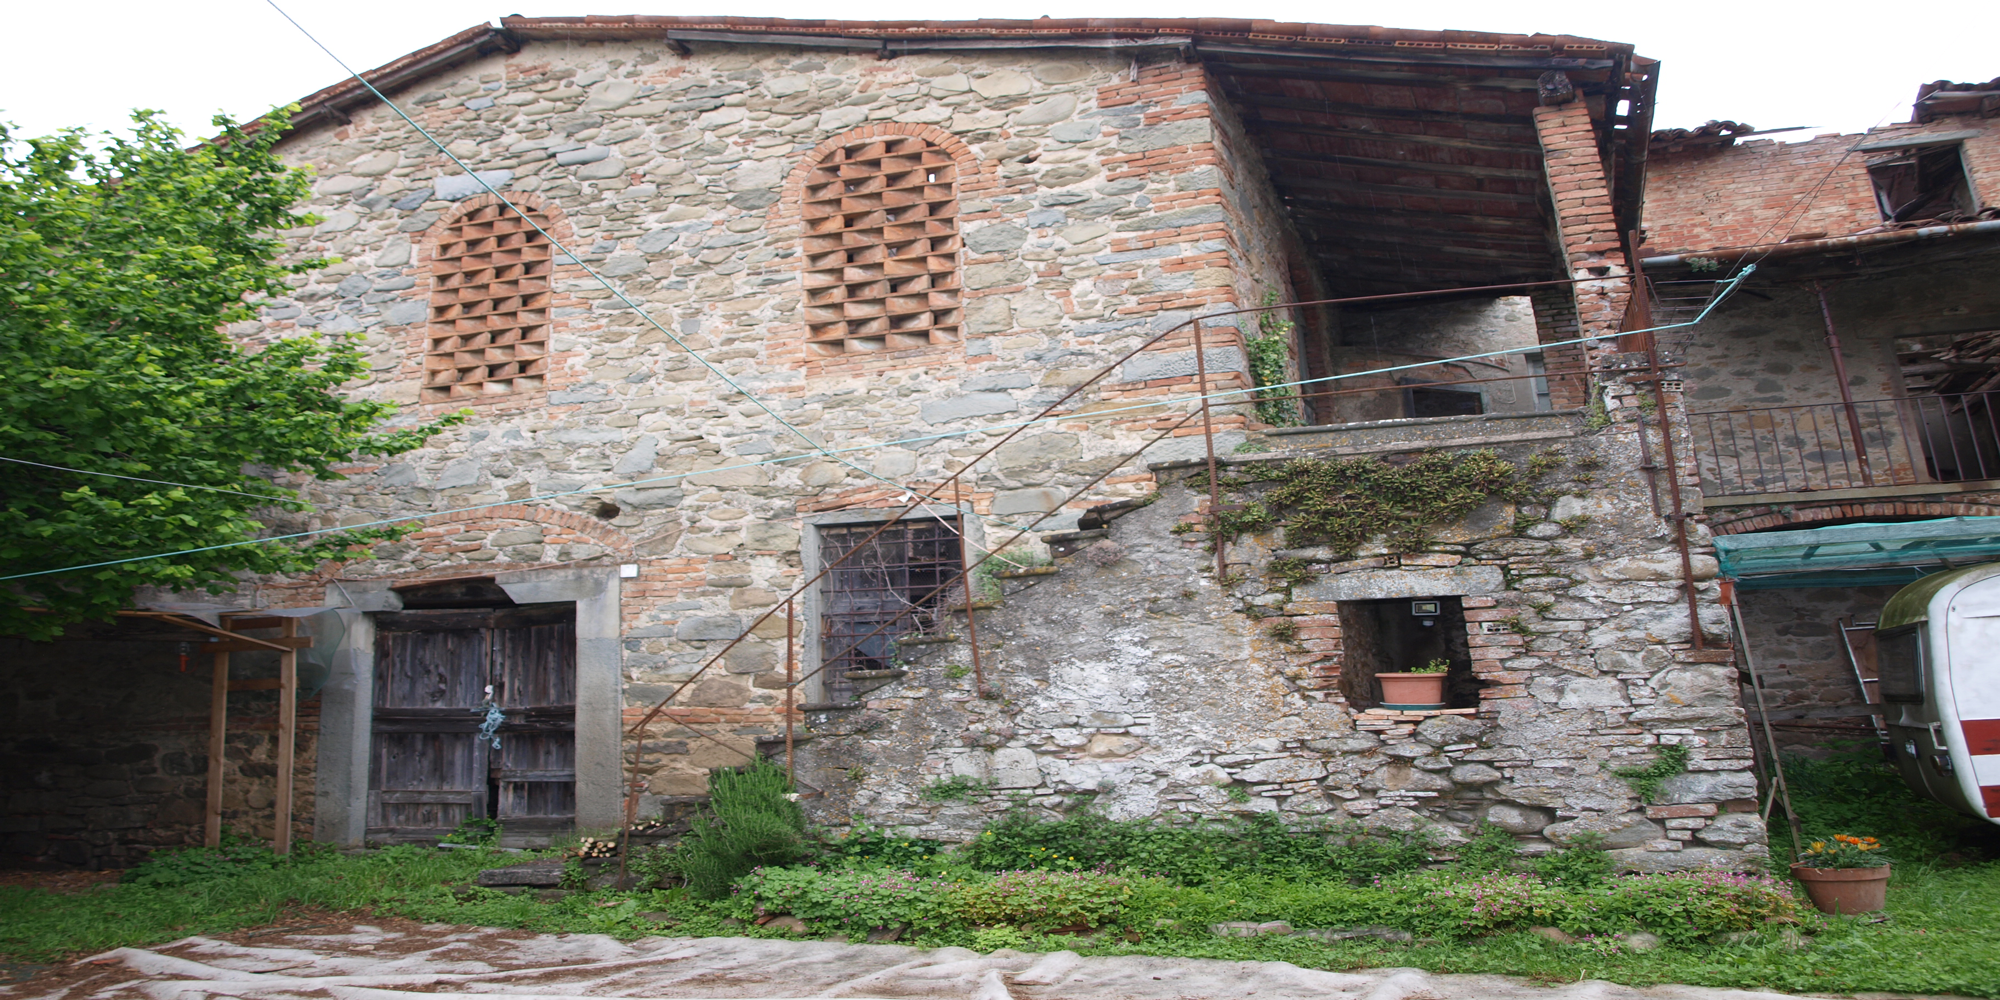 Stoned country house in Garfagnana